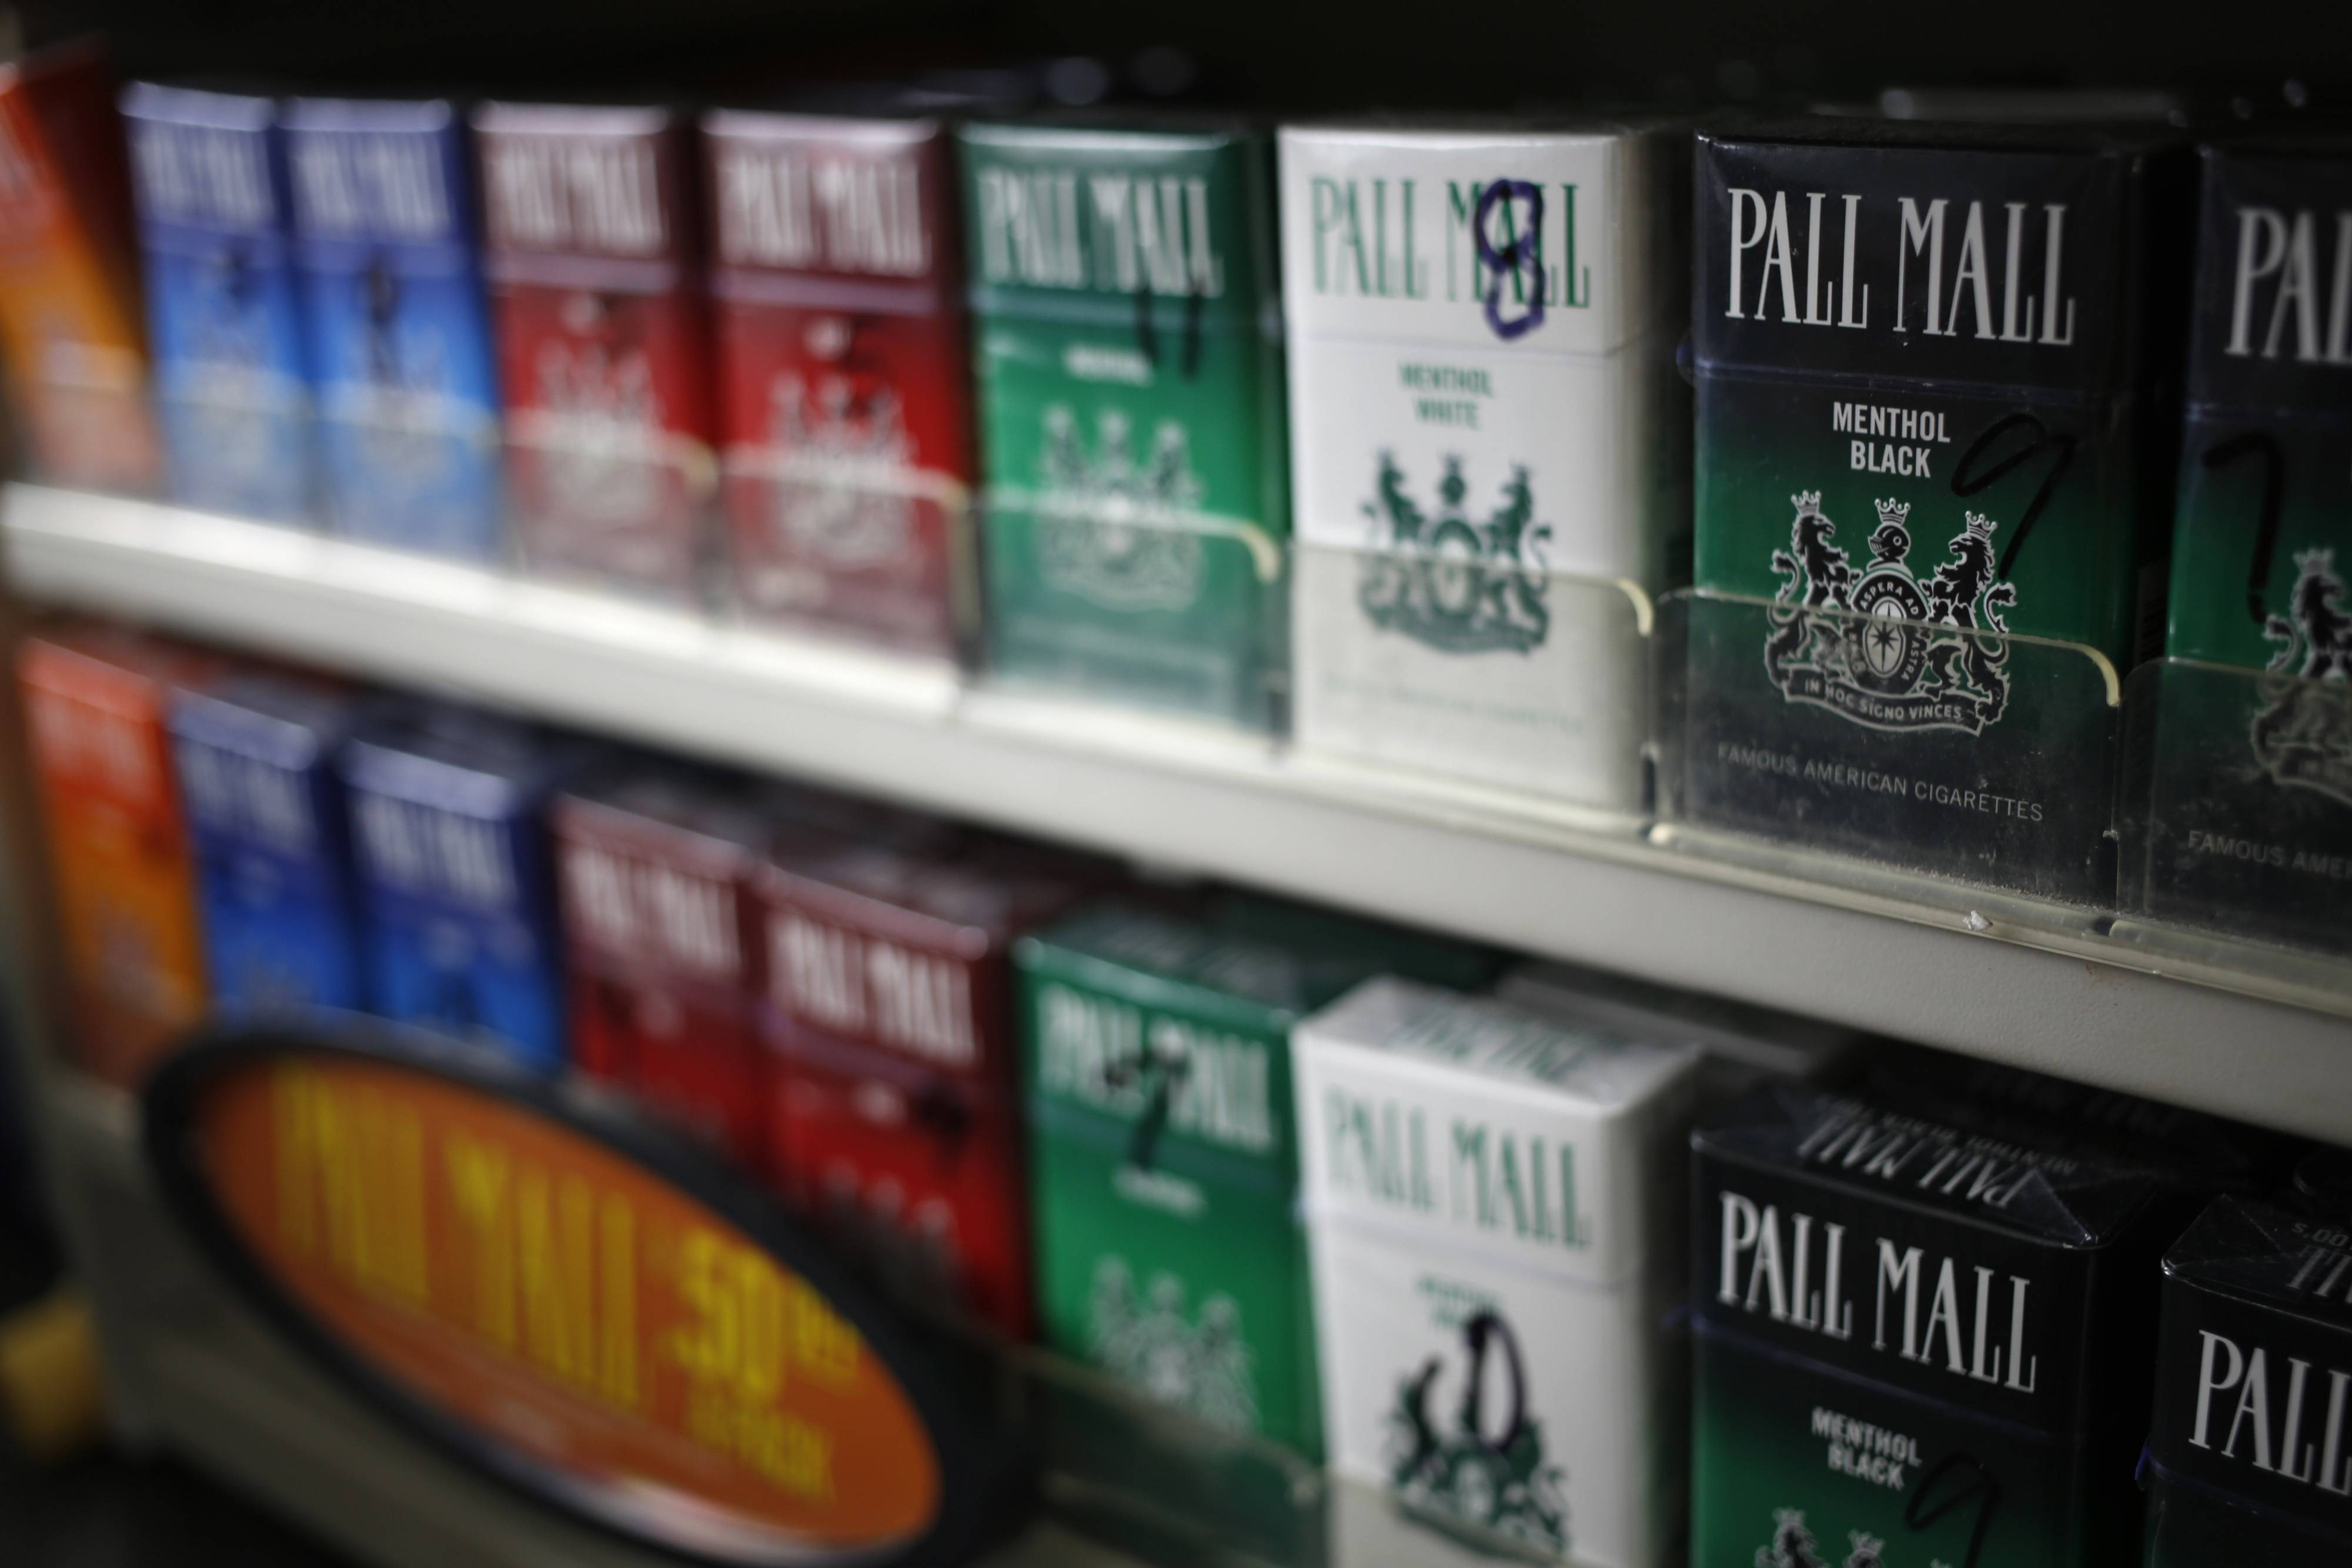 Reynolds American Inc., producer of Camel and Pall Mall cigarettes, agreed to buy rival Lorillard Inc. for $27.4 billion including debt in a deal that reduces the 400-year-old U.S. tobacco industry to two major competitors.